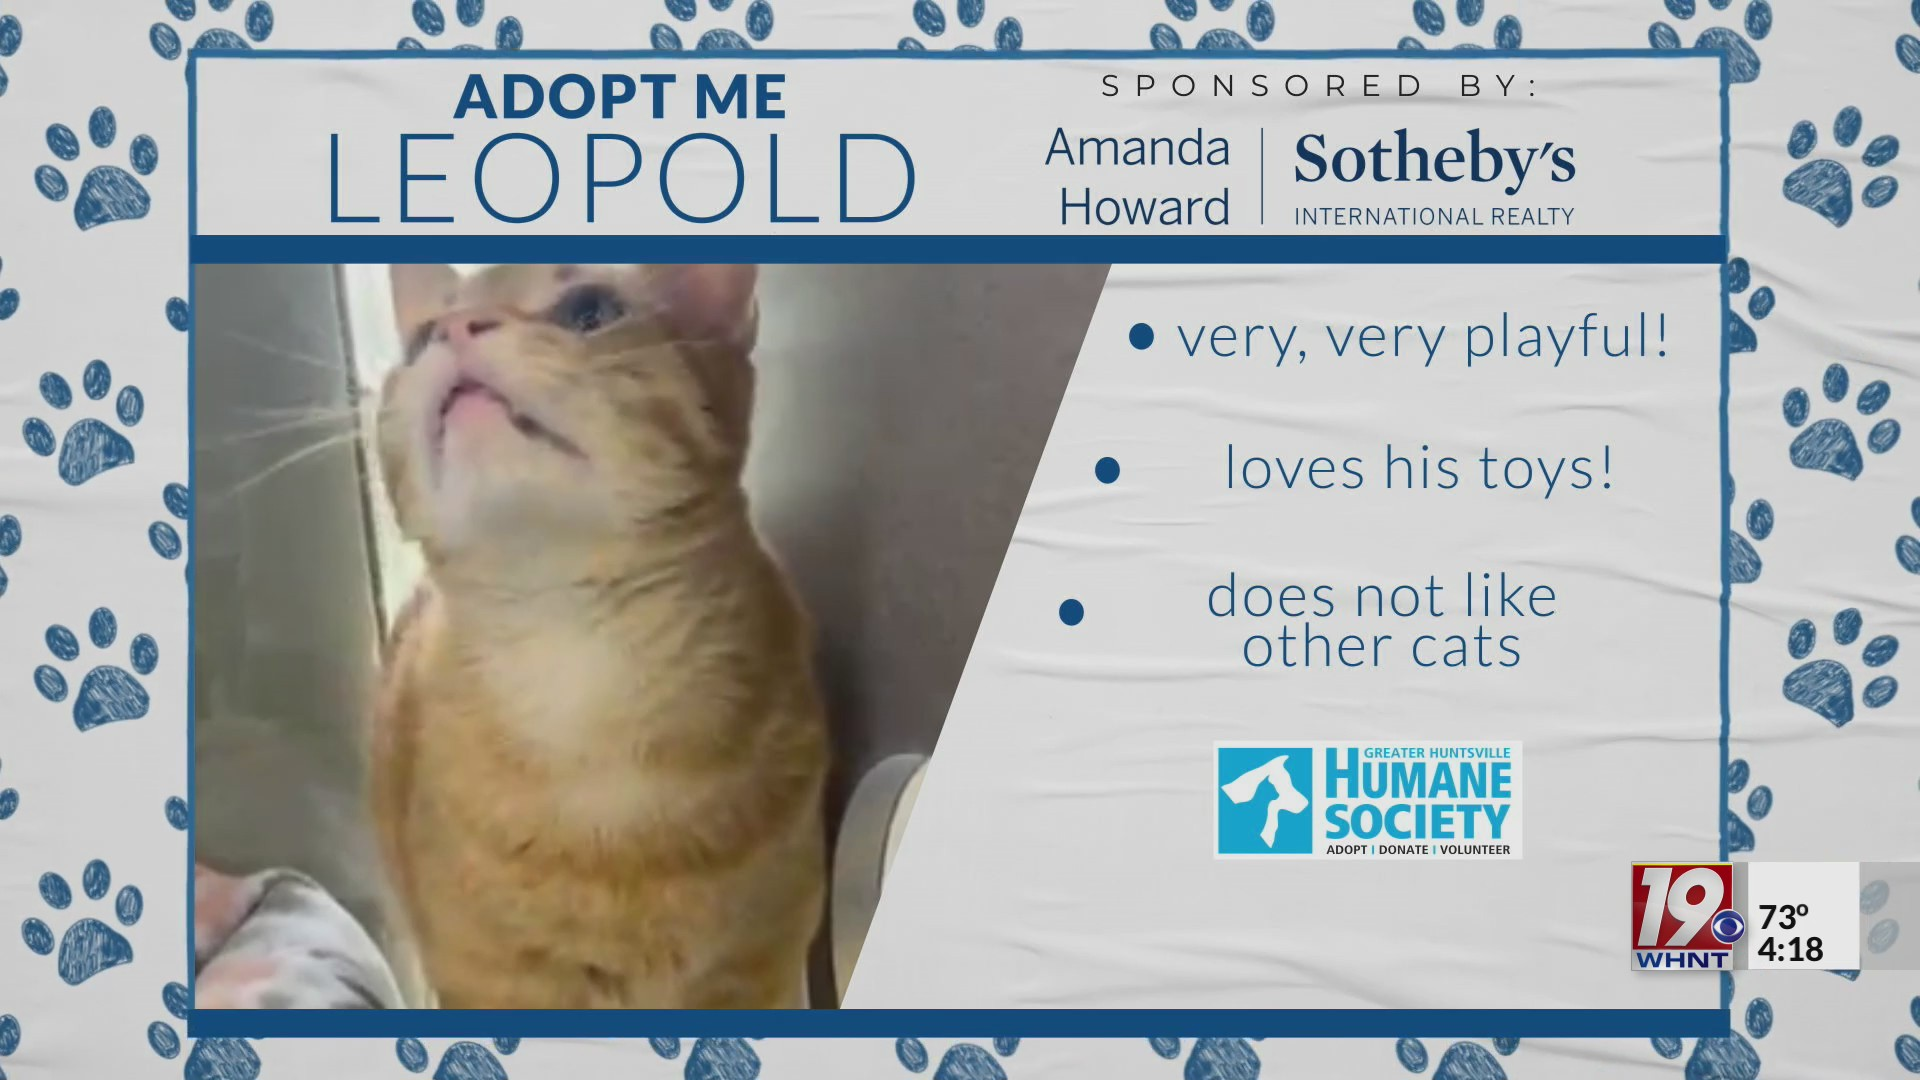 Leopold the cat available for adoption